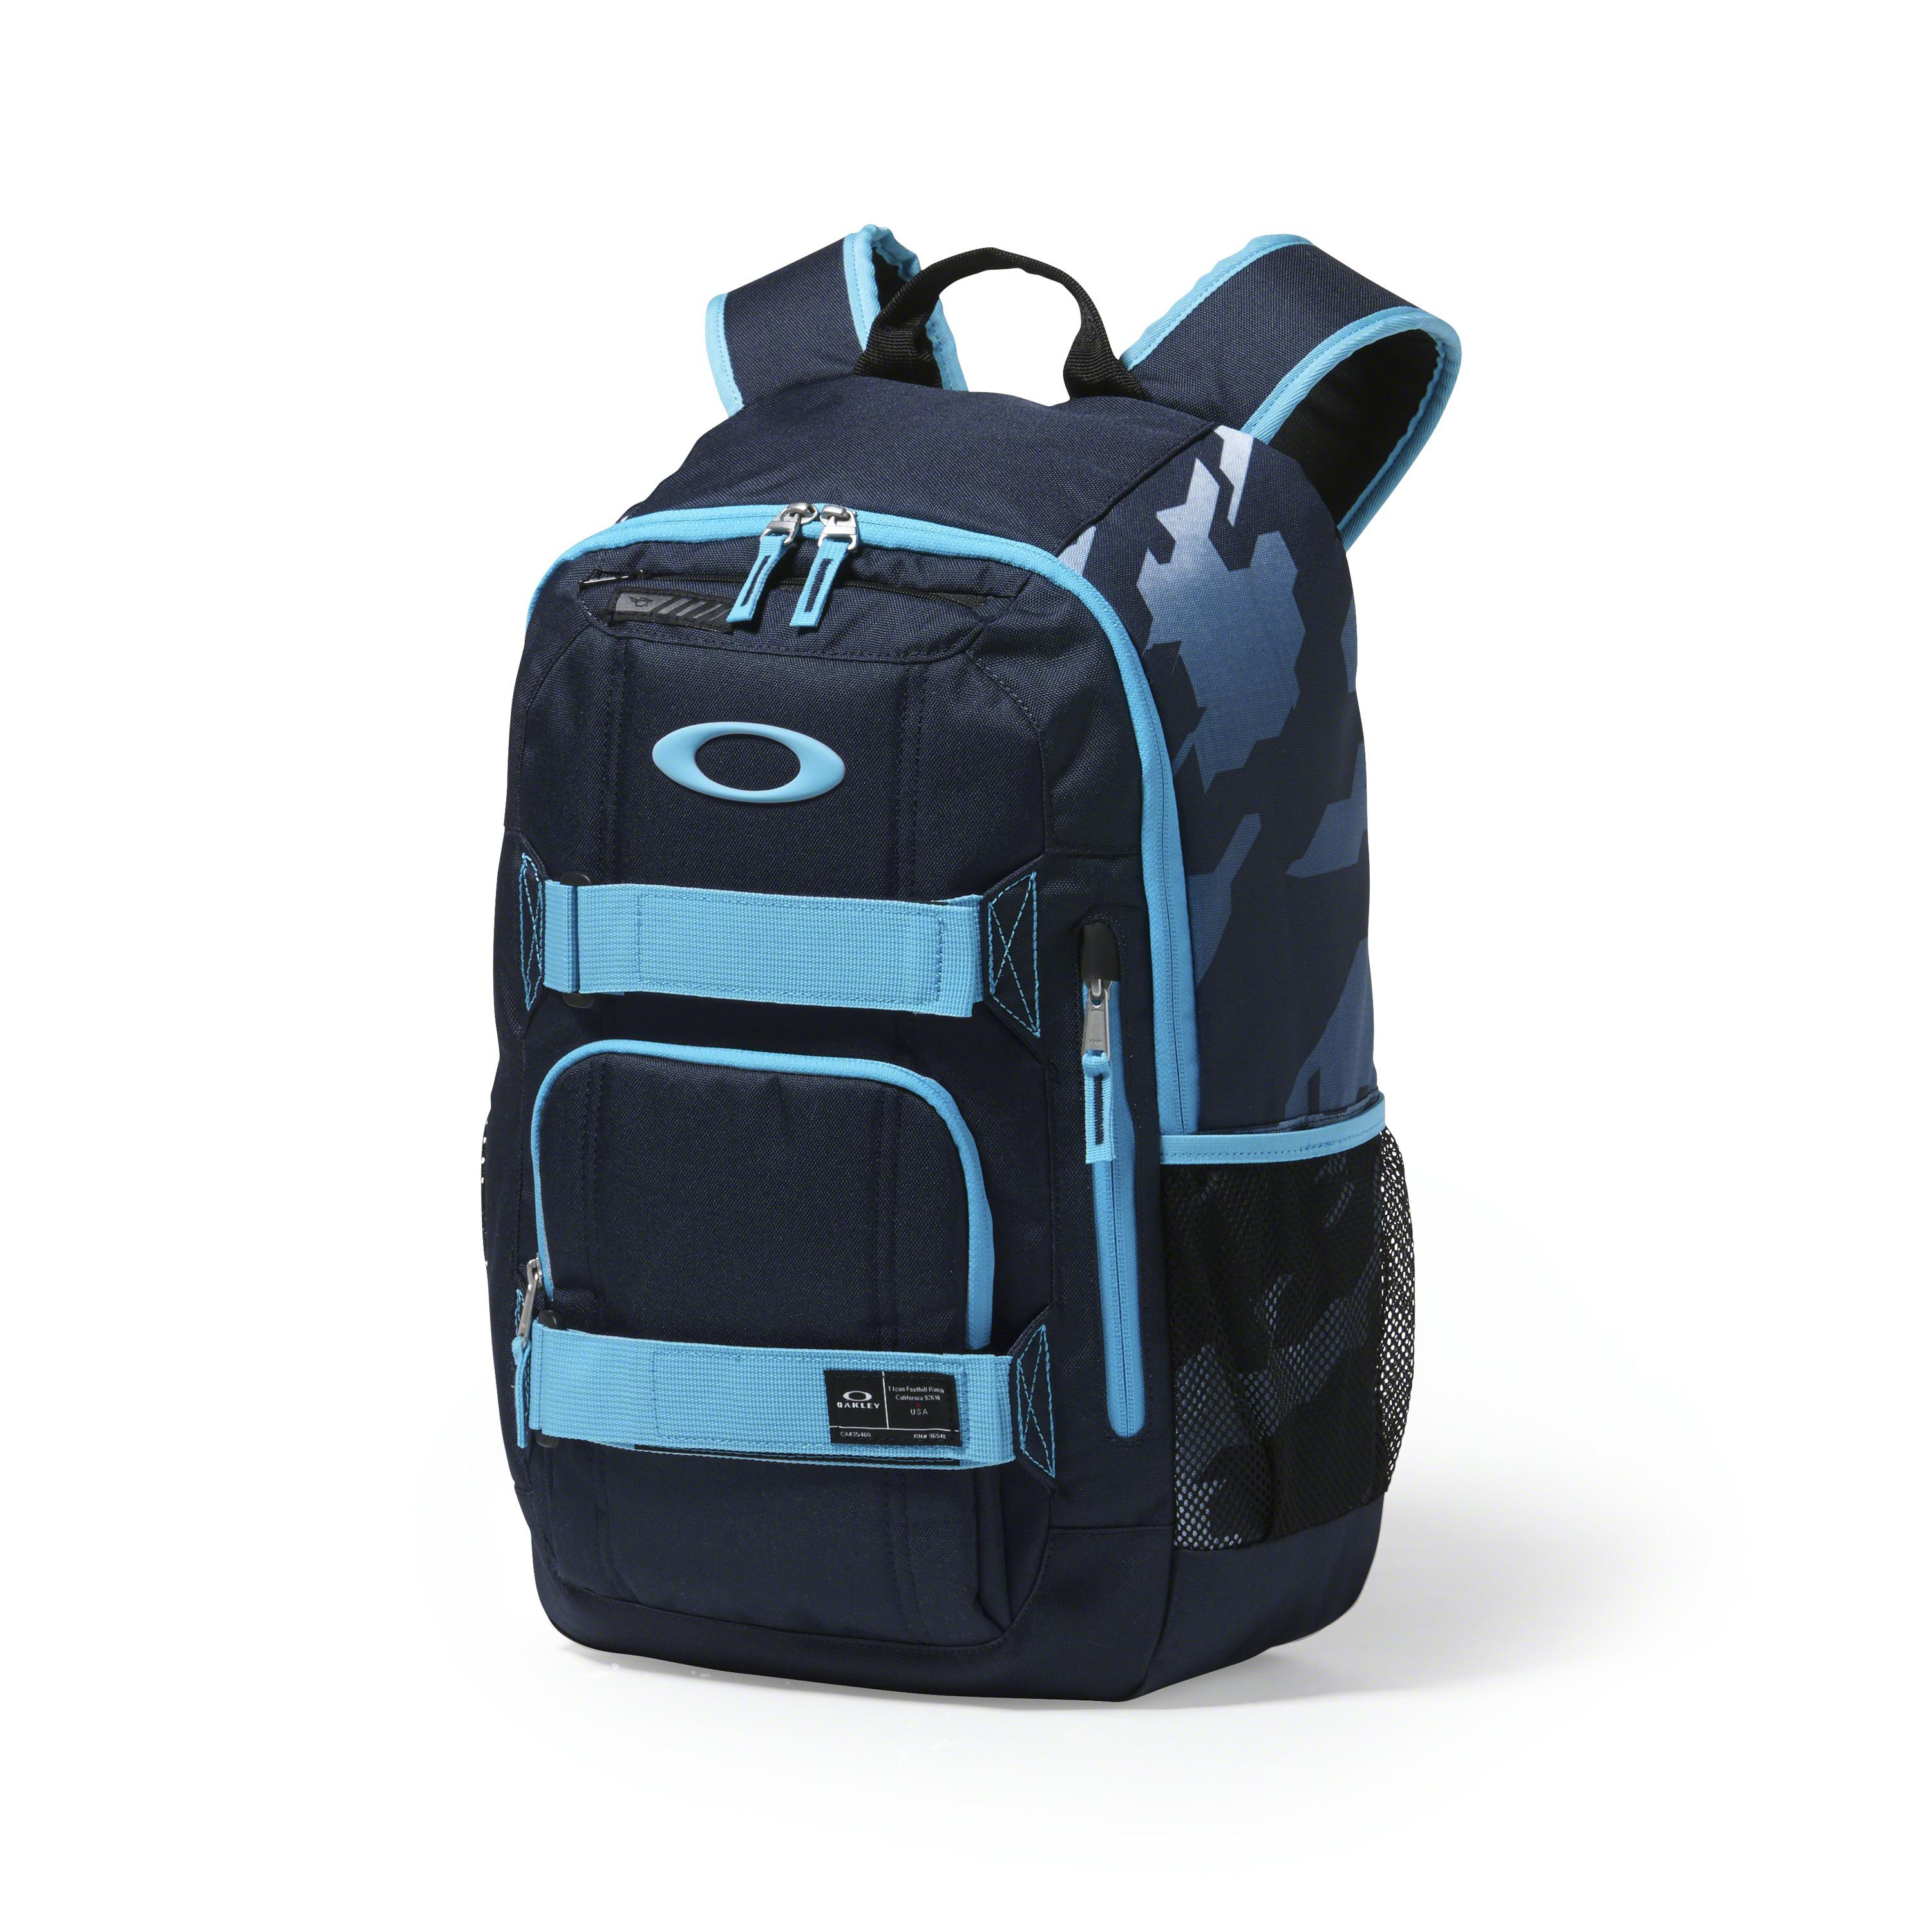 5be74e0e42 North Face Sweeper Backpack Amazon | The Shred Centre